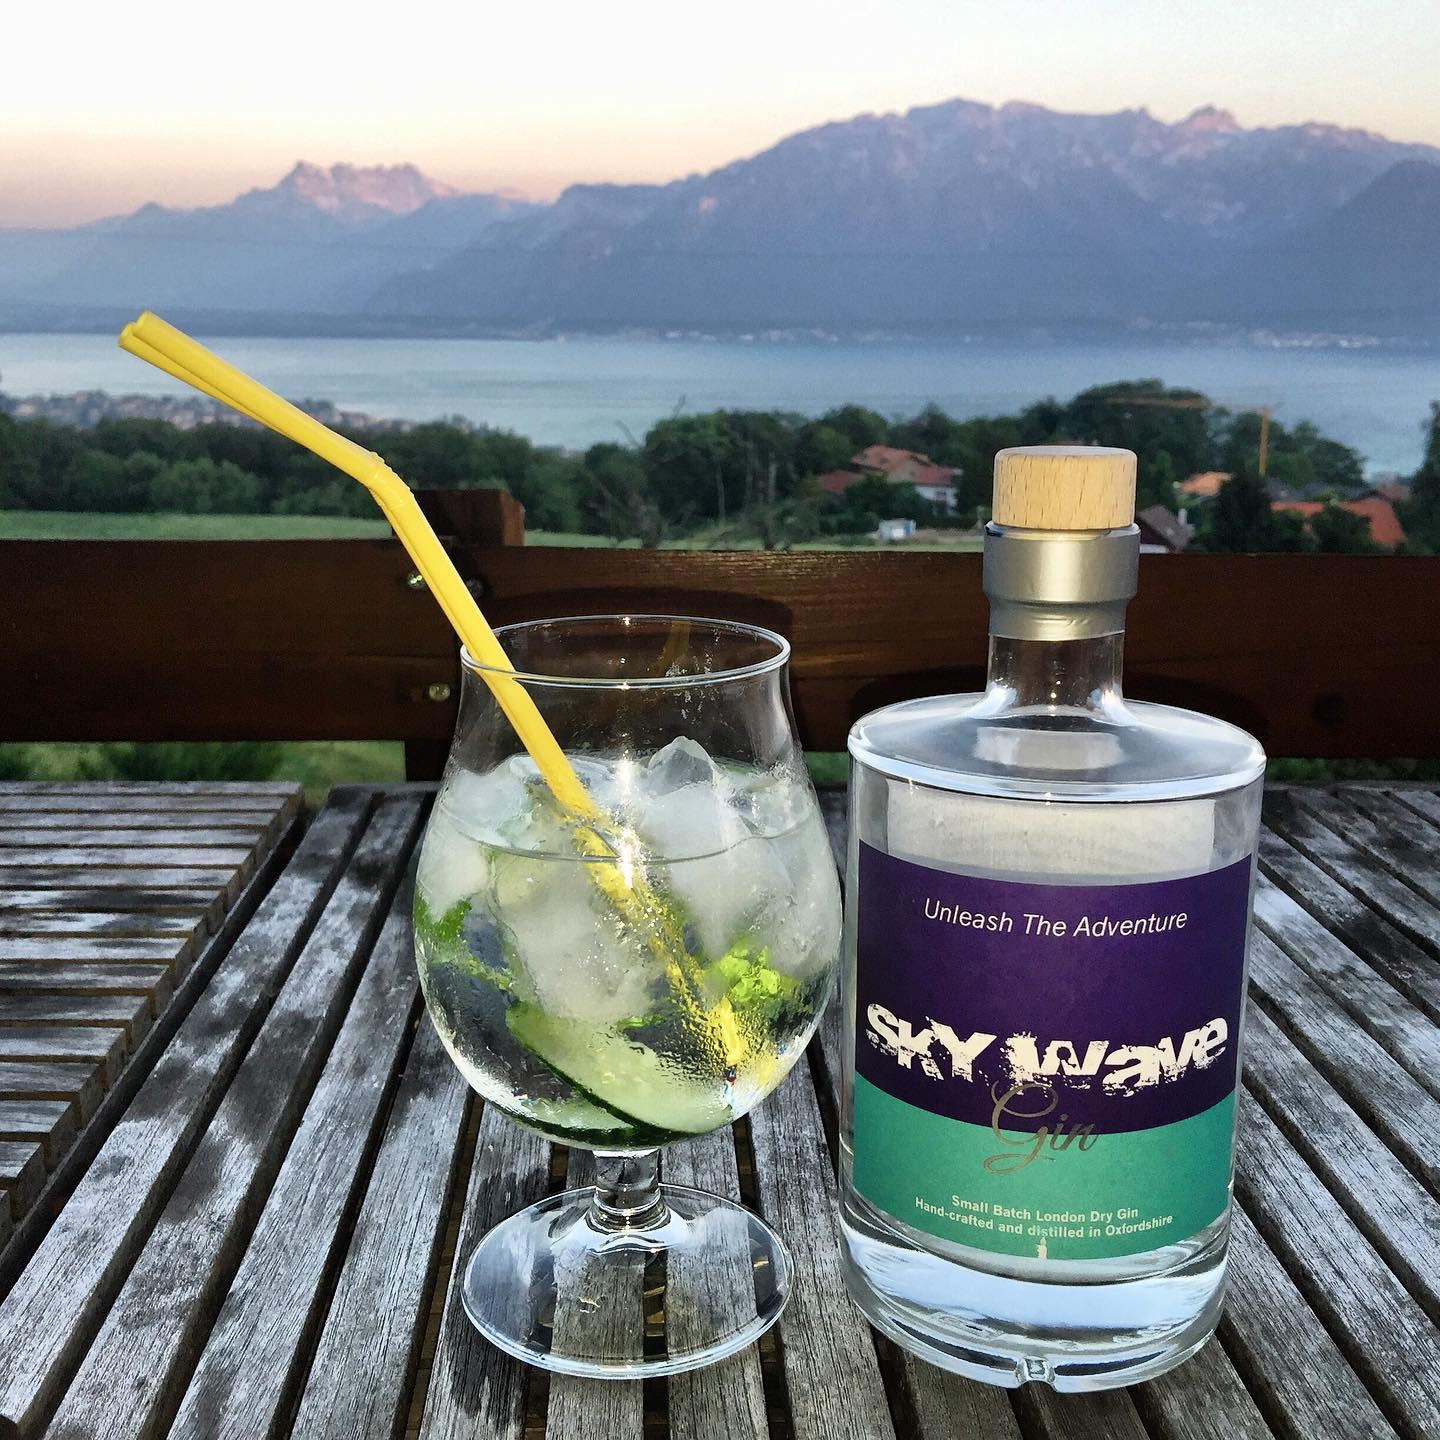 Sky Wave Gin enjoying a relaxing view over Lake Geneva, Switzerland